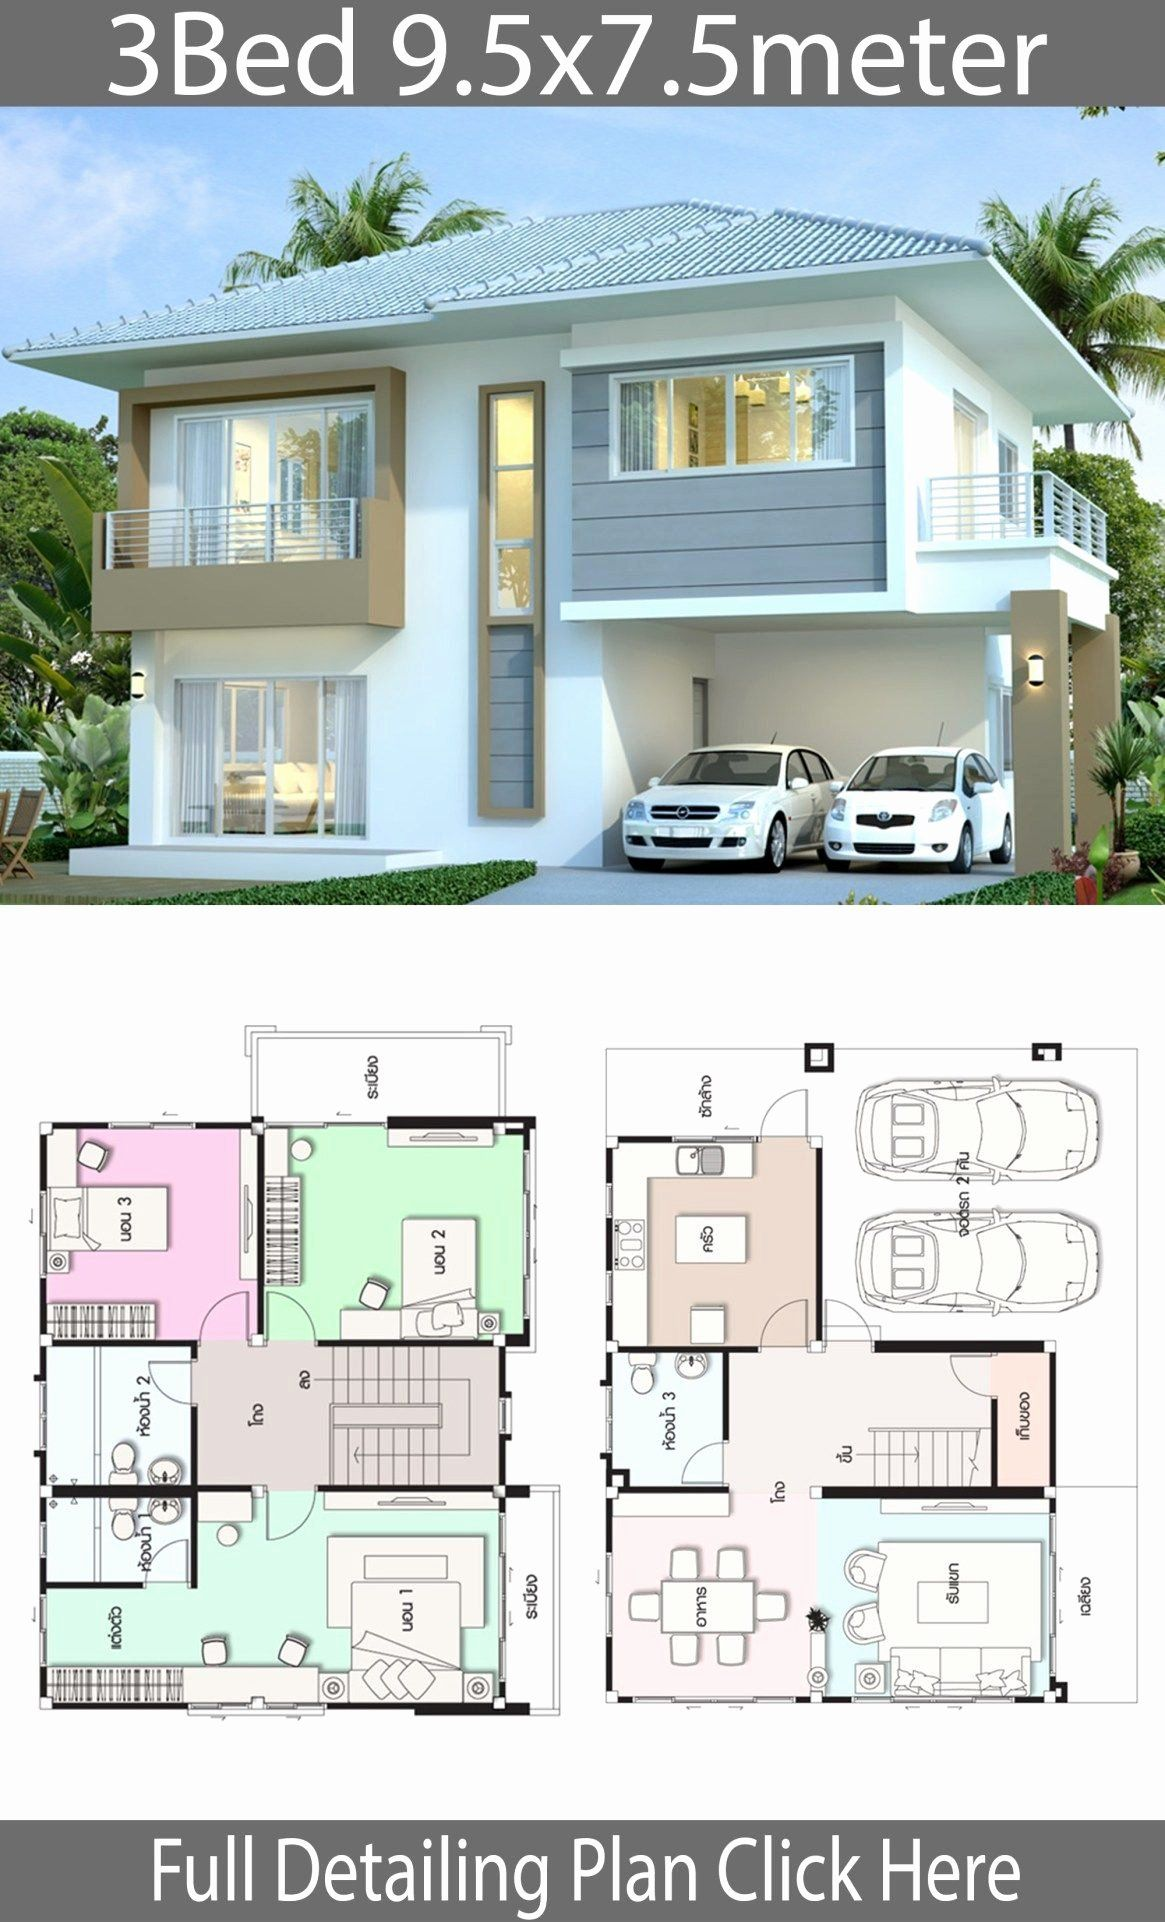 Click Home Design New House Design Plan 9 5x7 5m With 3 Bedrooms Home Design Plans House Architecture Design House Construction Plan